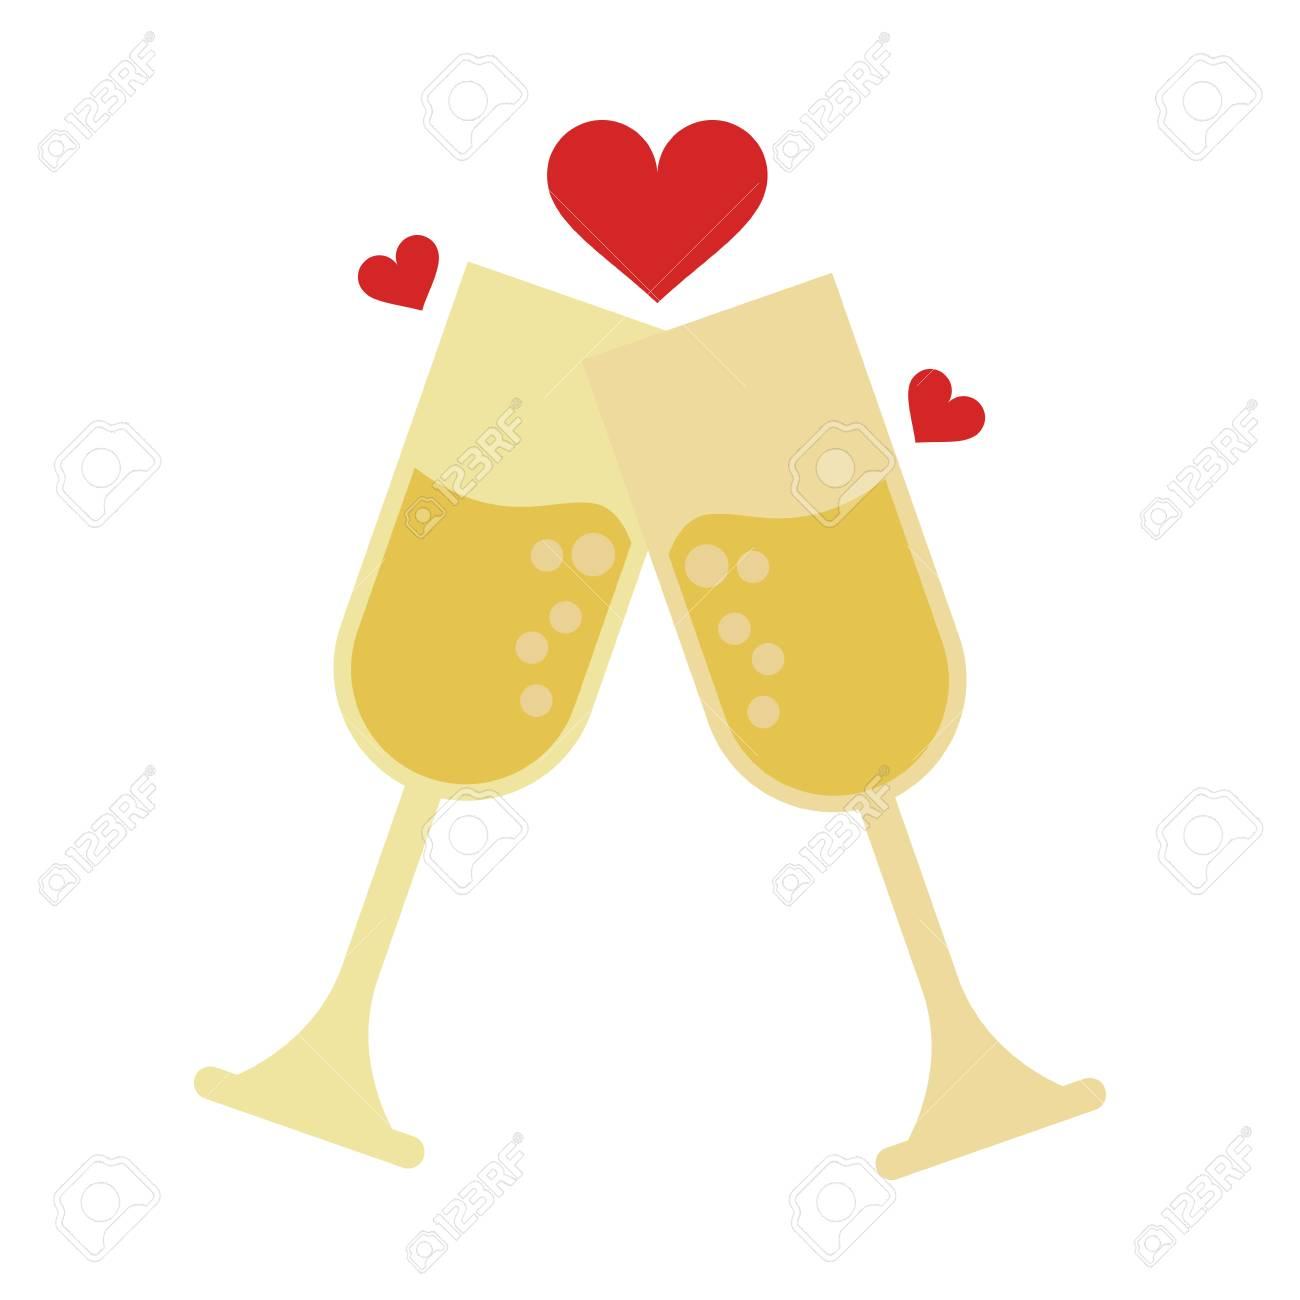 A champagne glasses toasting with hearts wedding related icon...